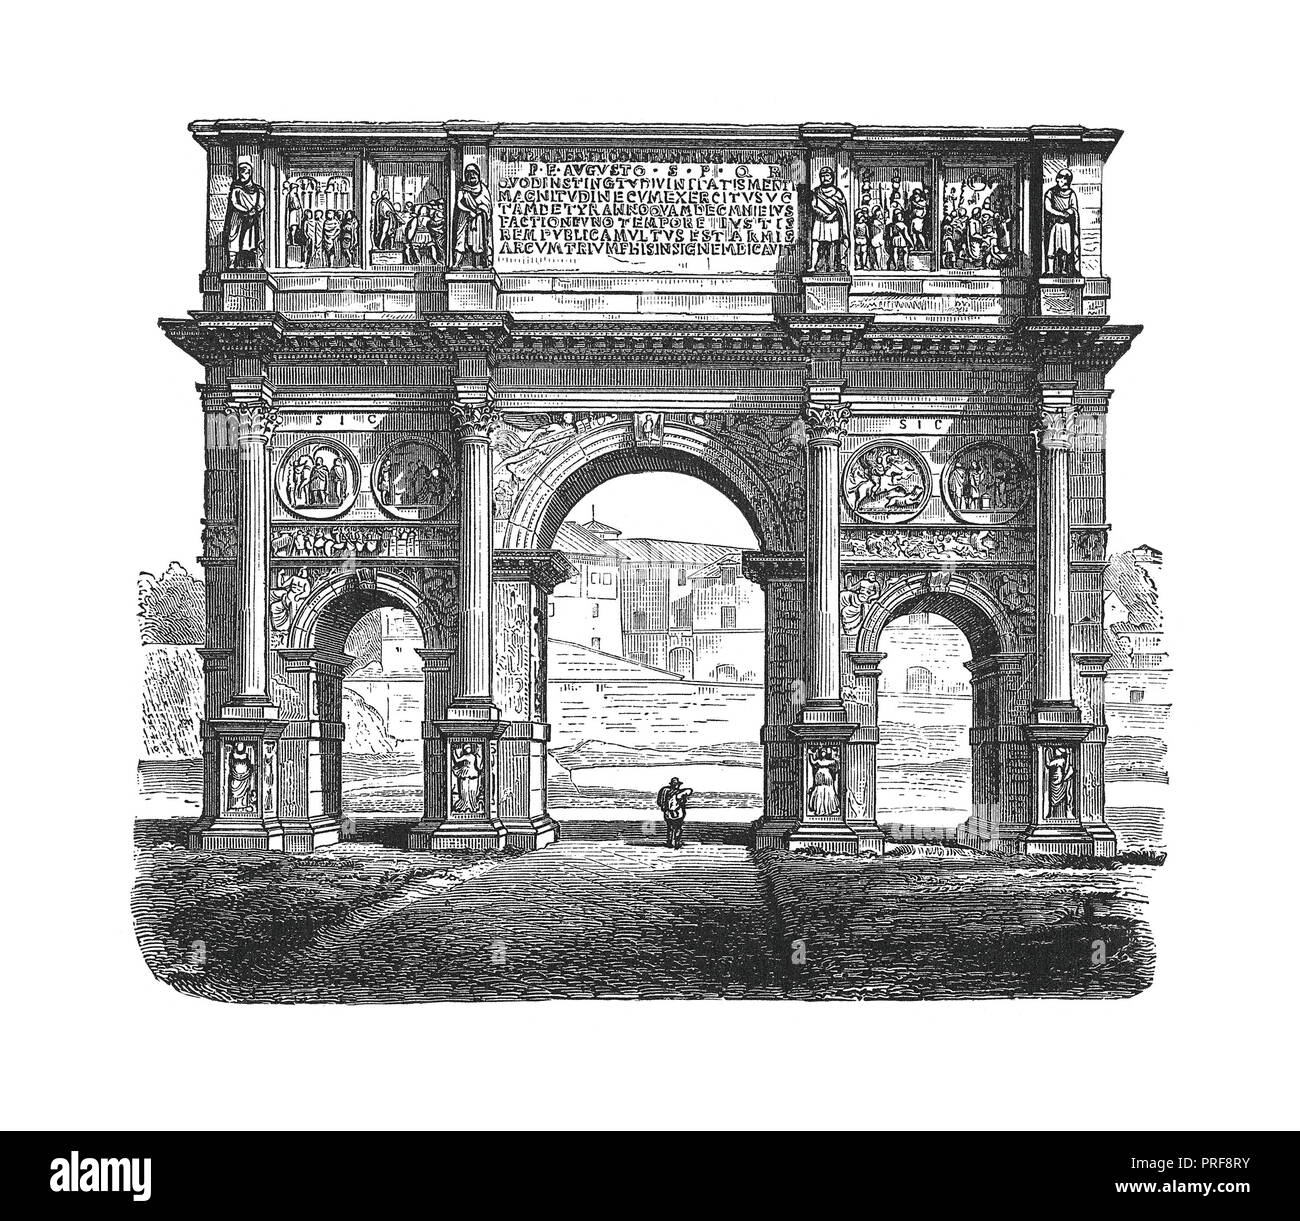 Original artwork of The arch of Constantine. Published in A pictorial history of the world's great nations: from the earliest dates to the present tim - Stock Image